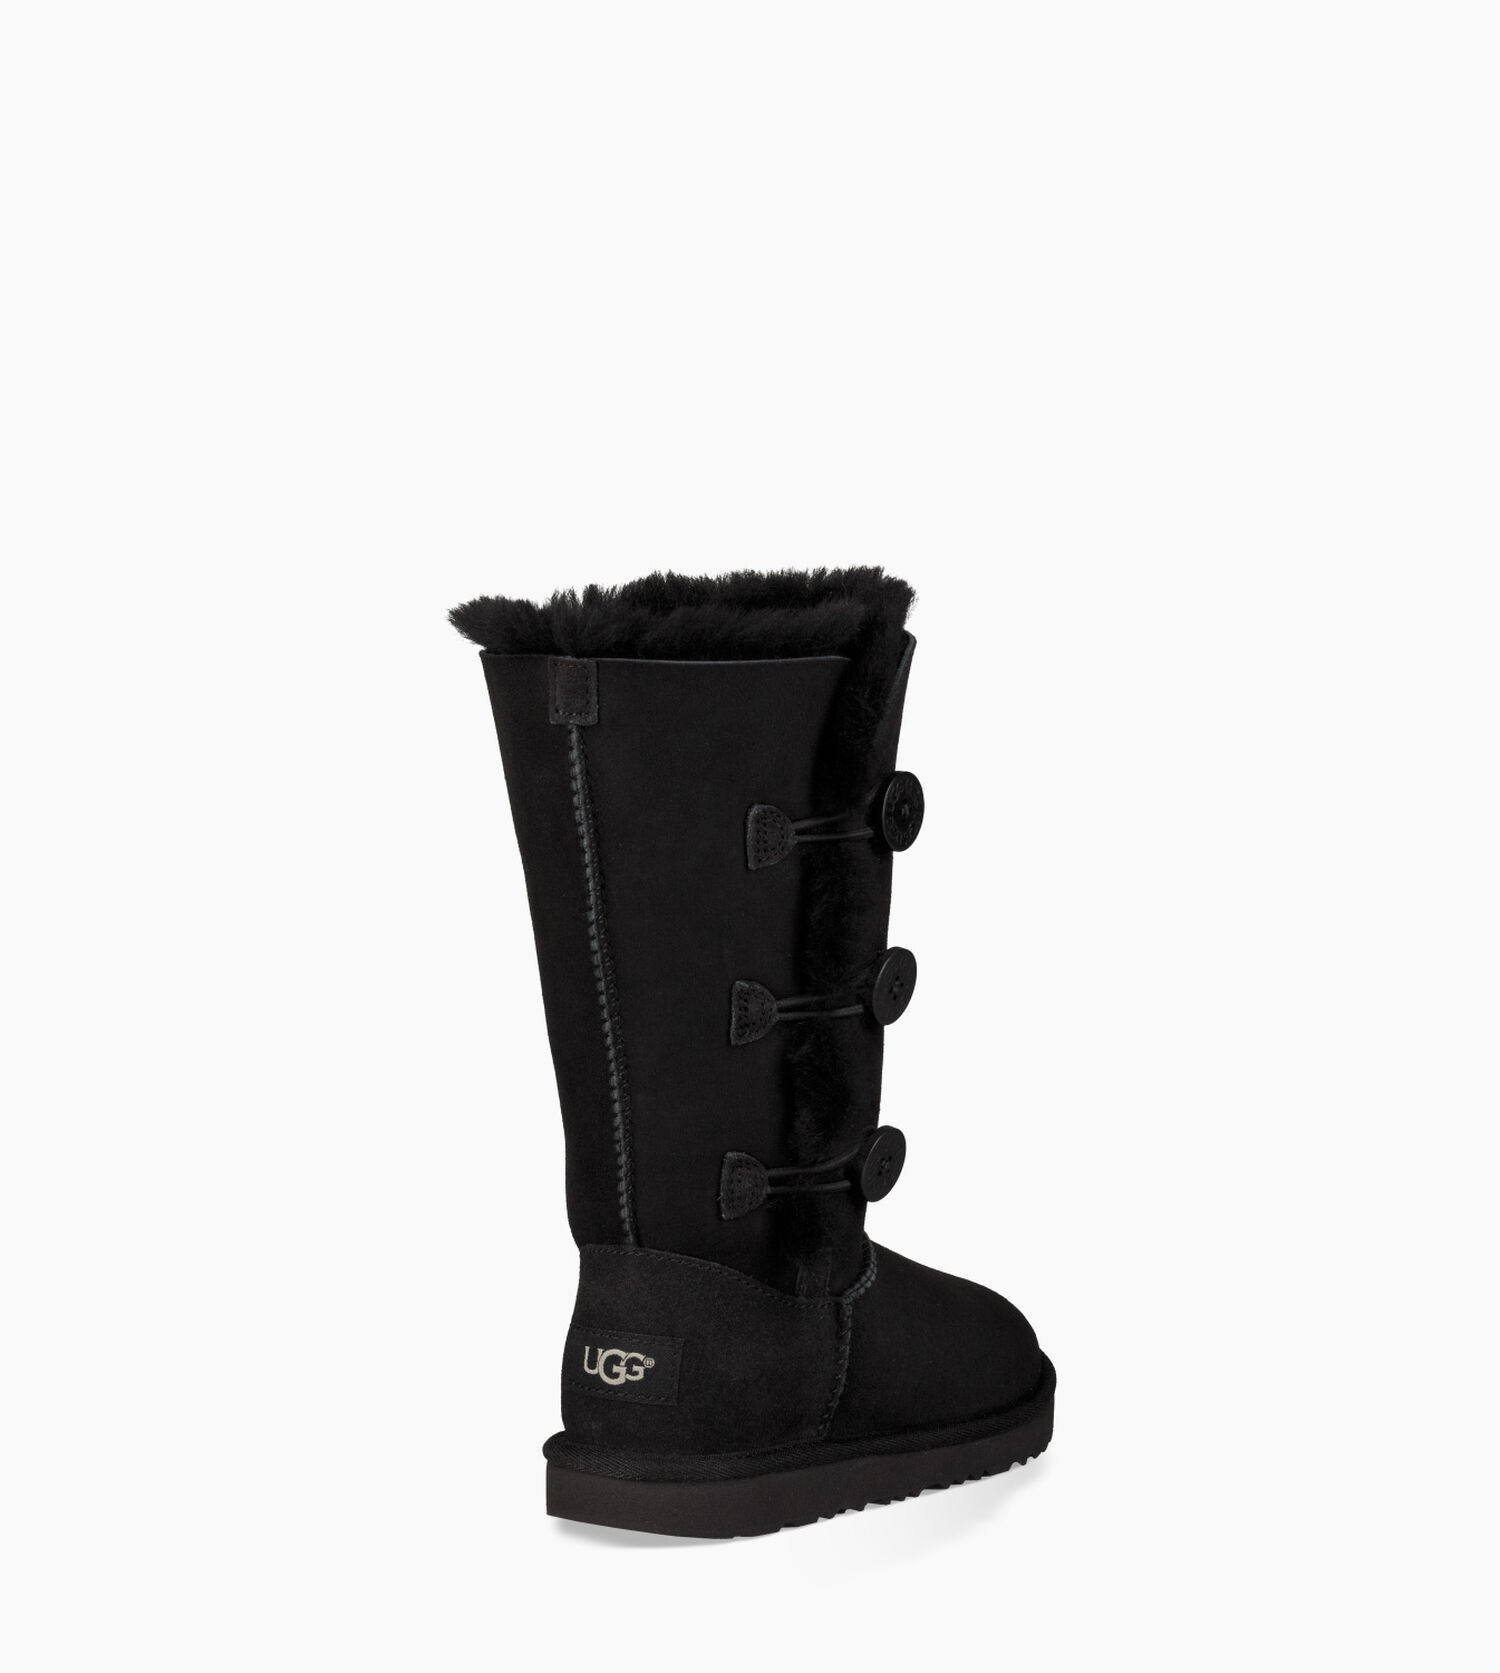 0a228b60bd4 Kids' Share this product Bailey Button II Triplet Boot